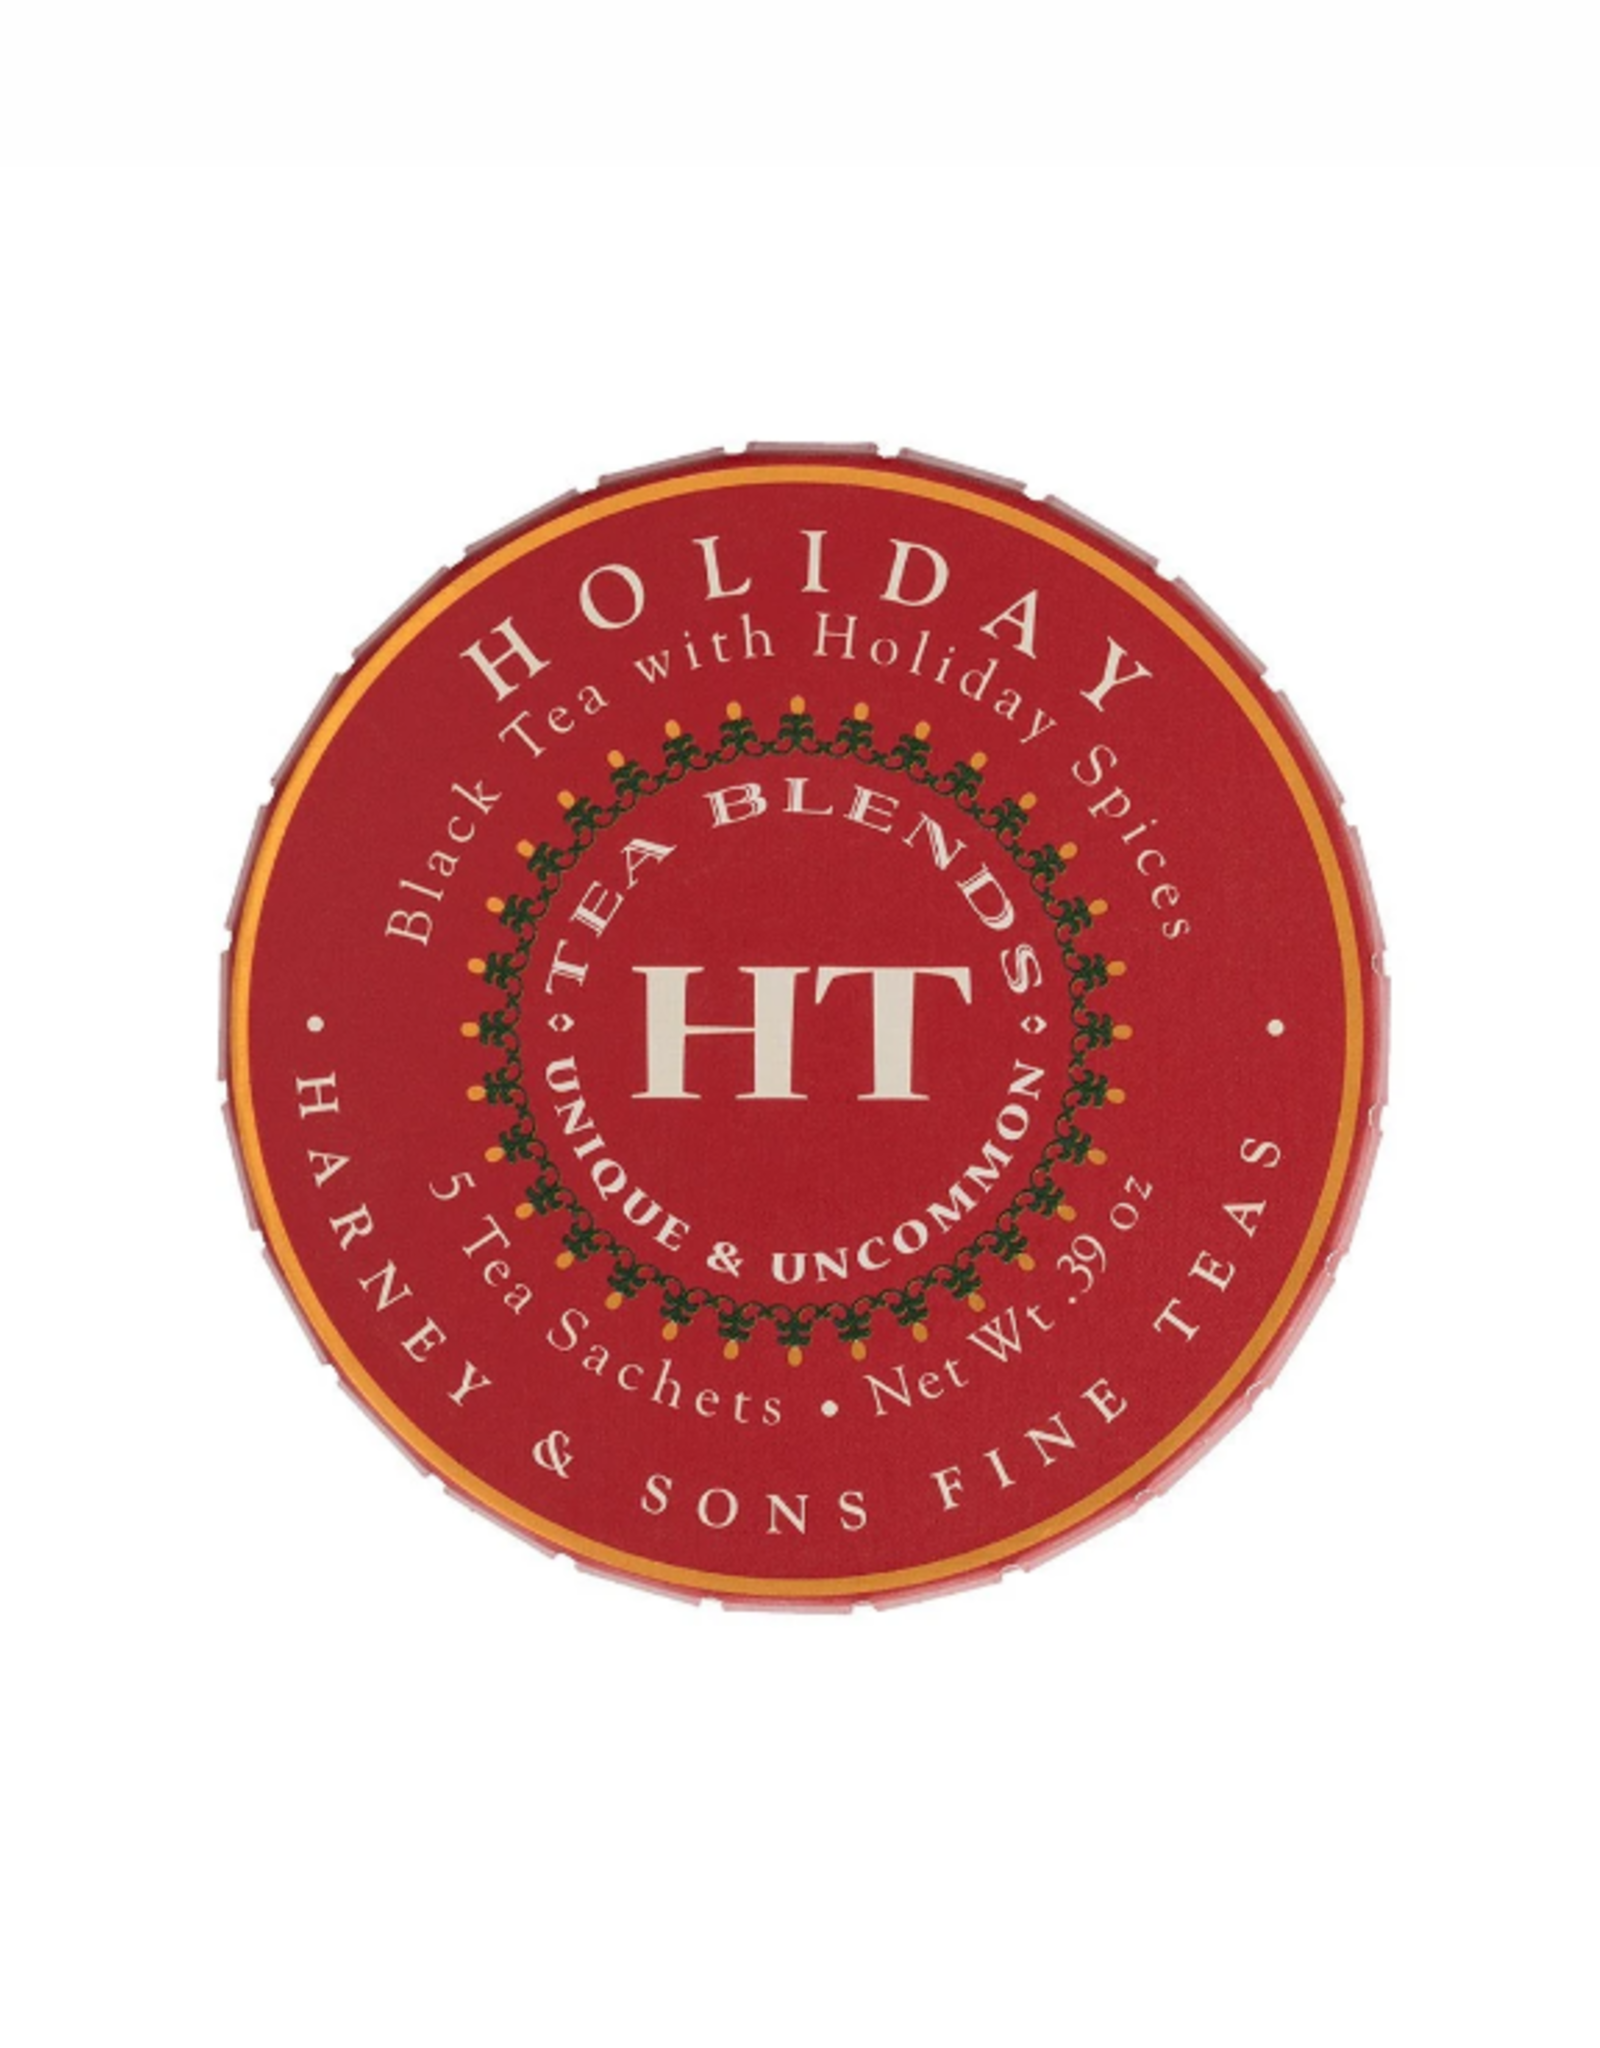 Harney & Sons Holiday Tea, Tagalong Tin